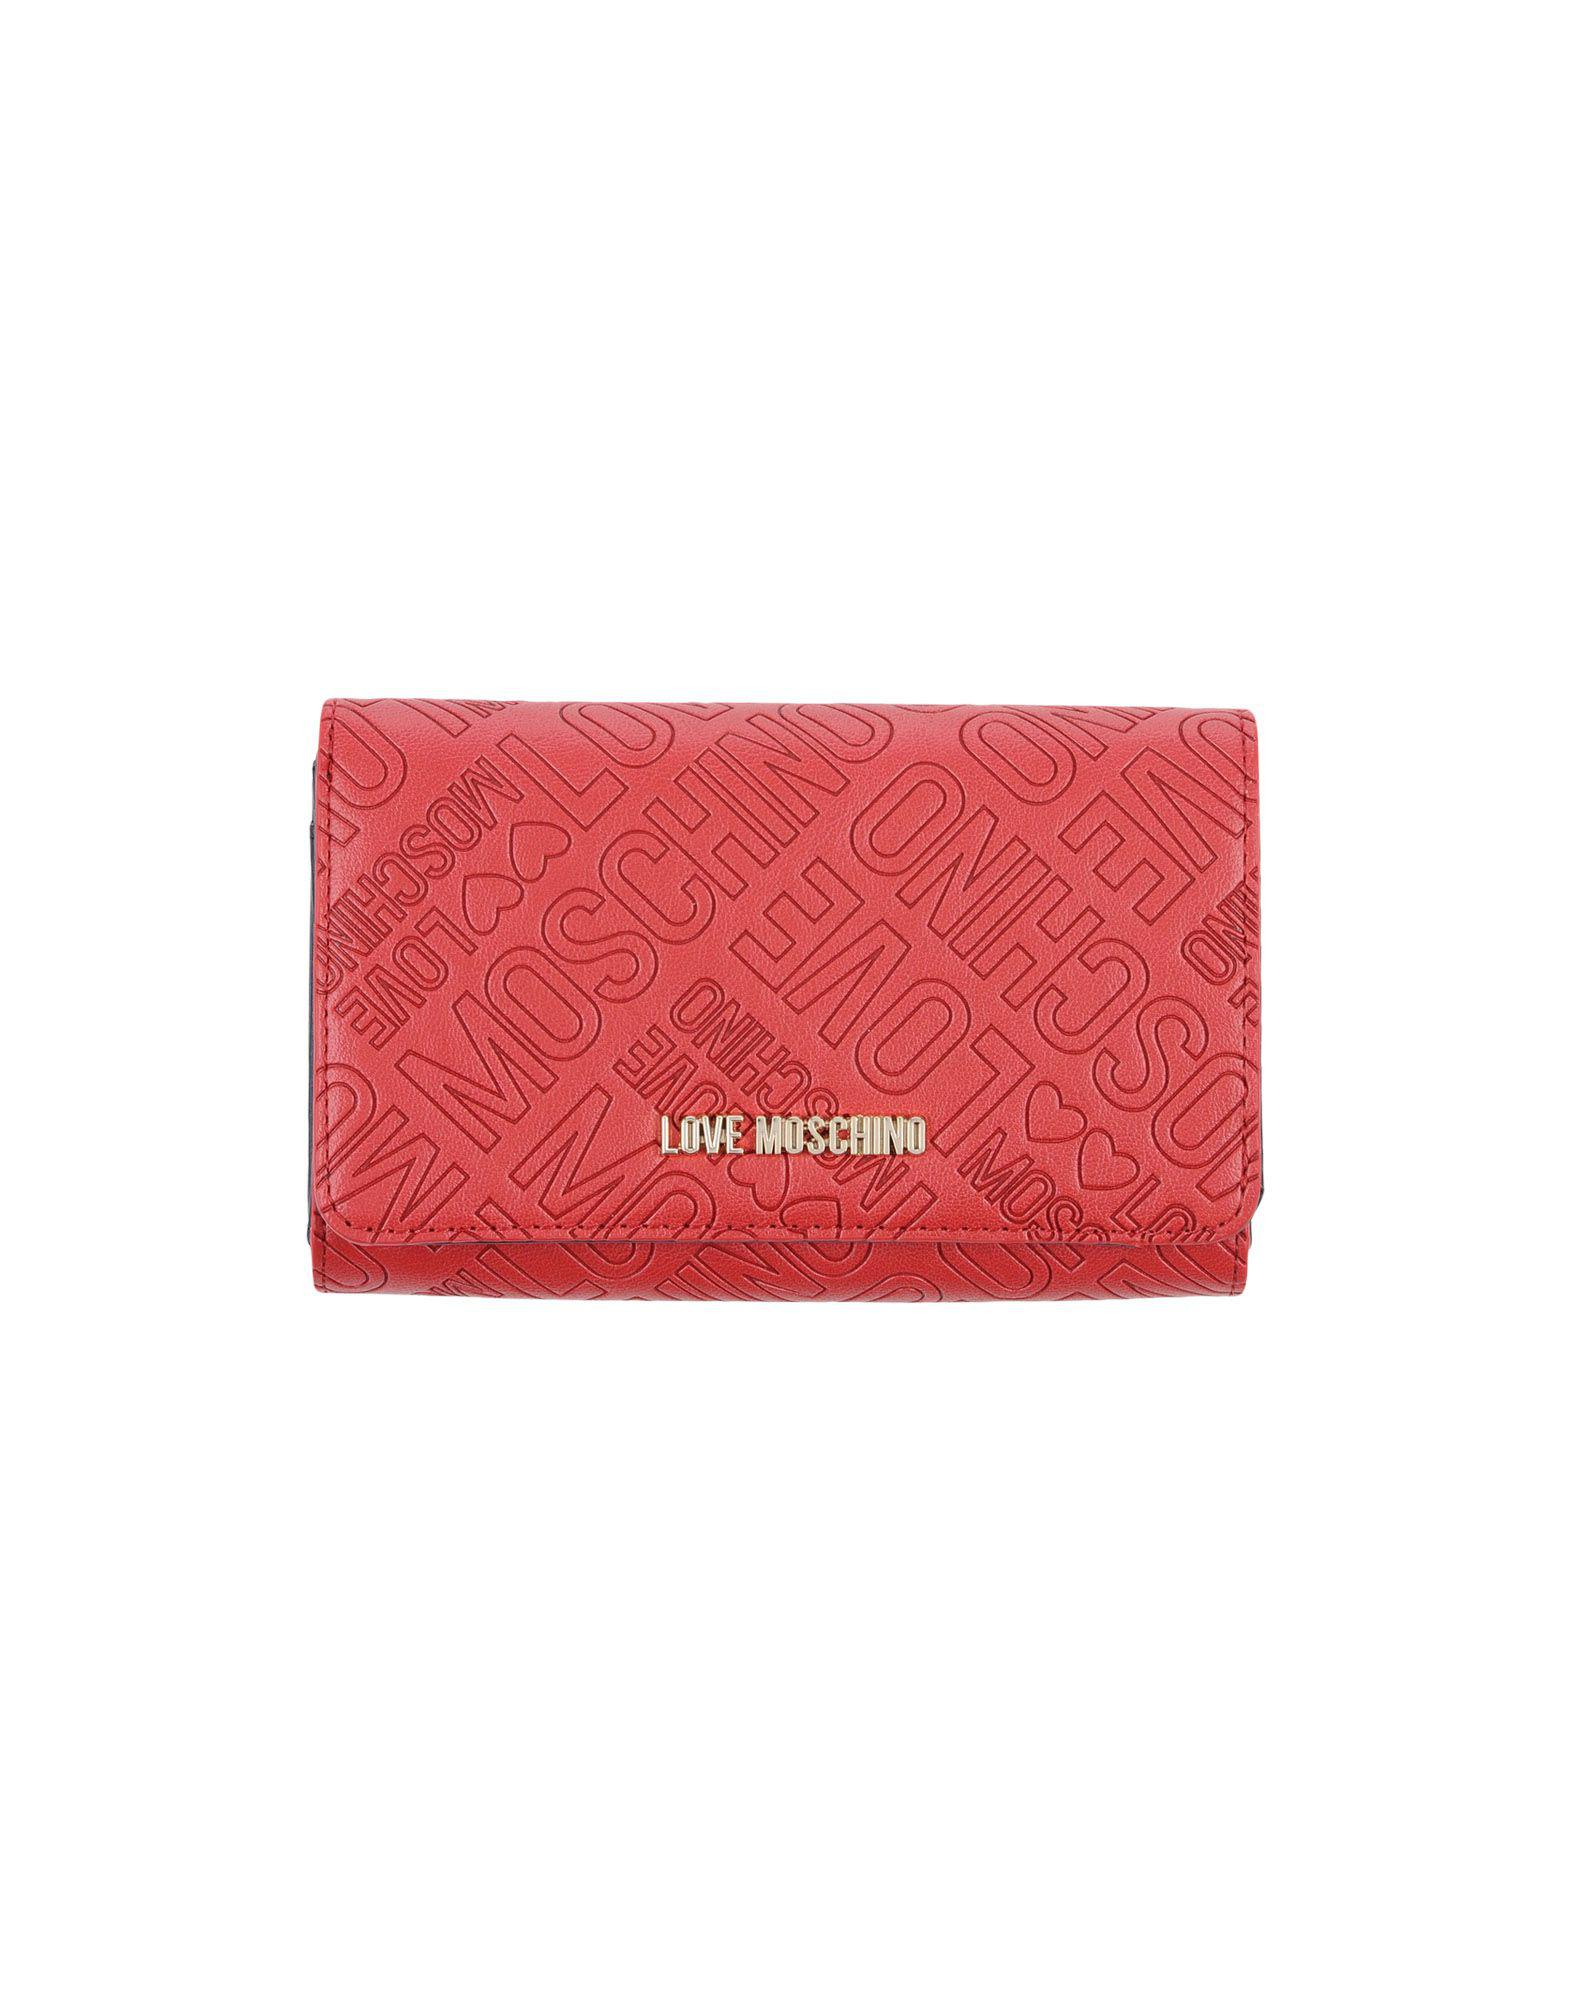 d019c27e45b Lyst - Love Moschino Wallet in Red